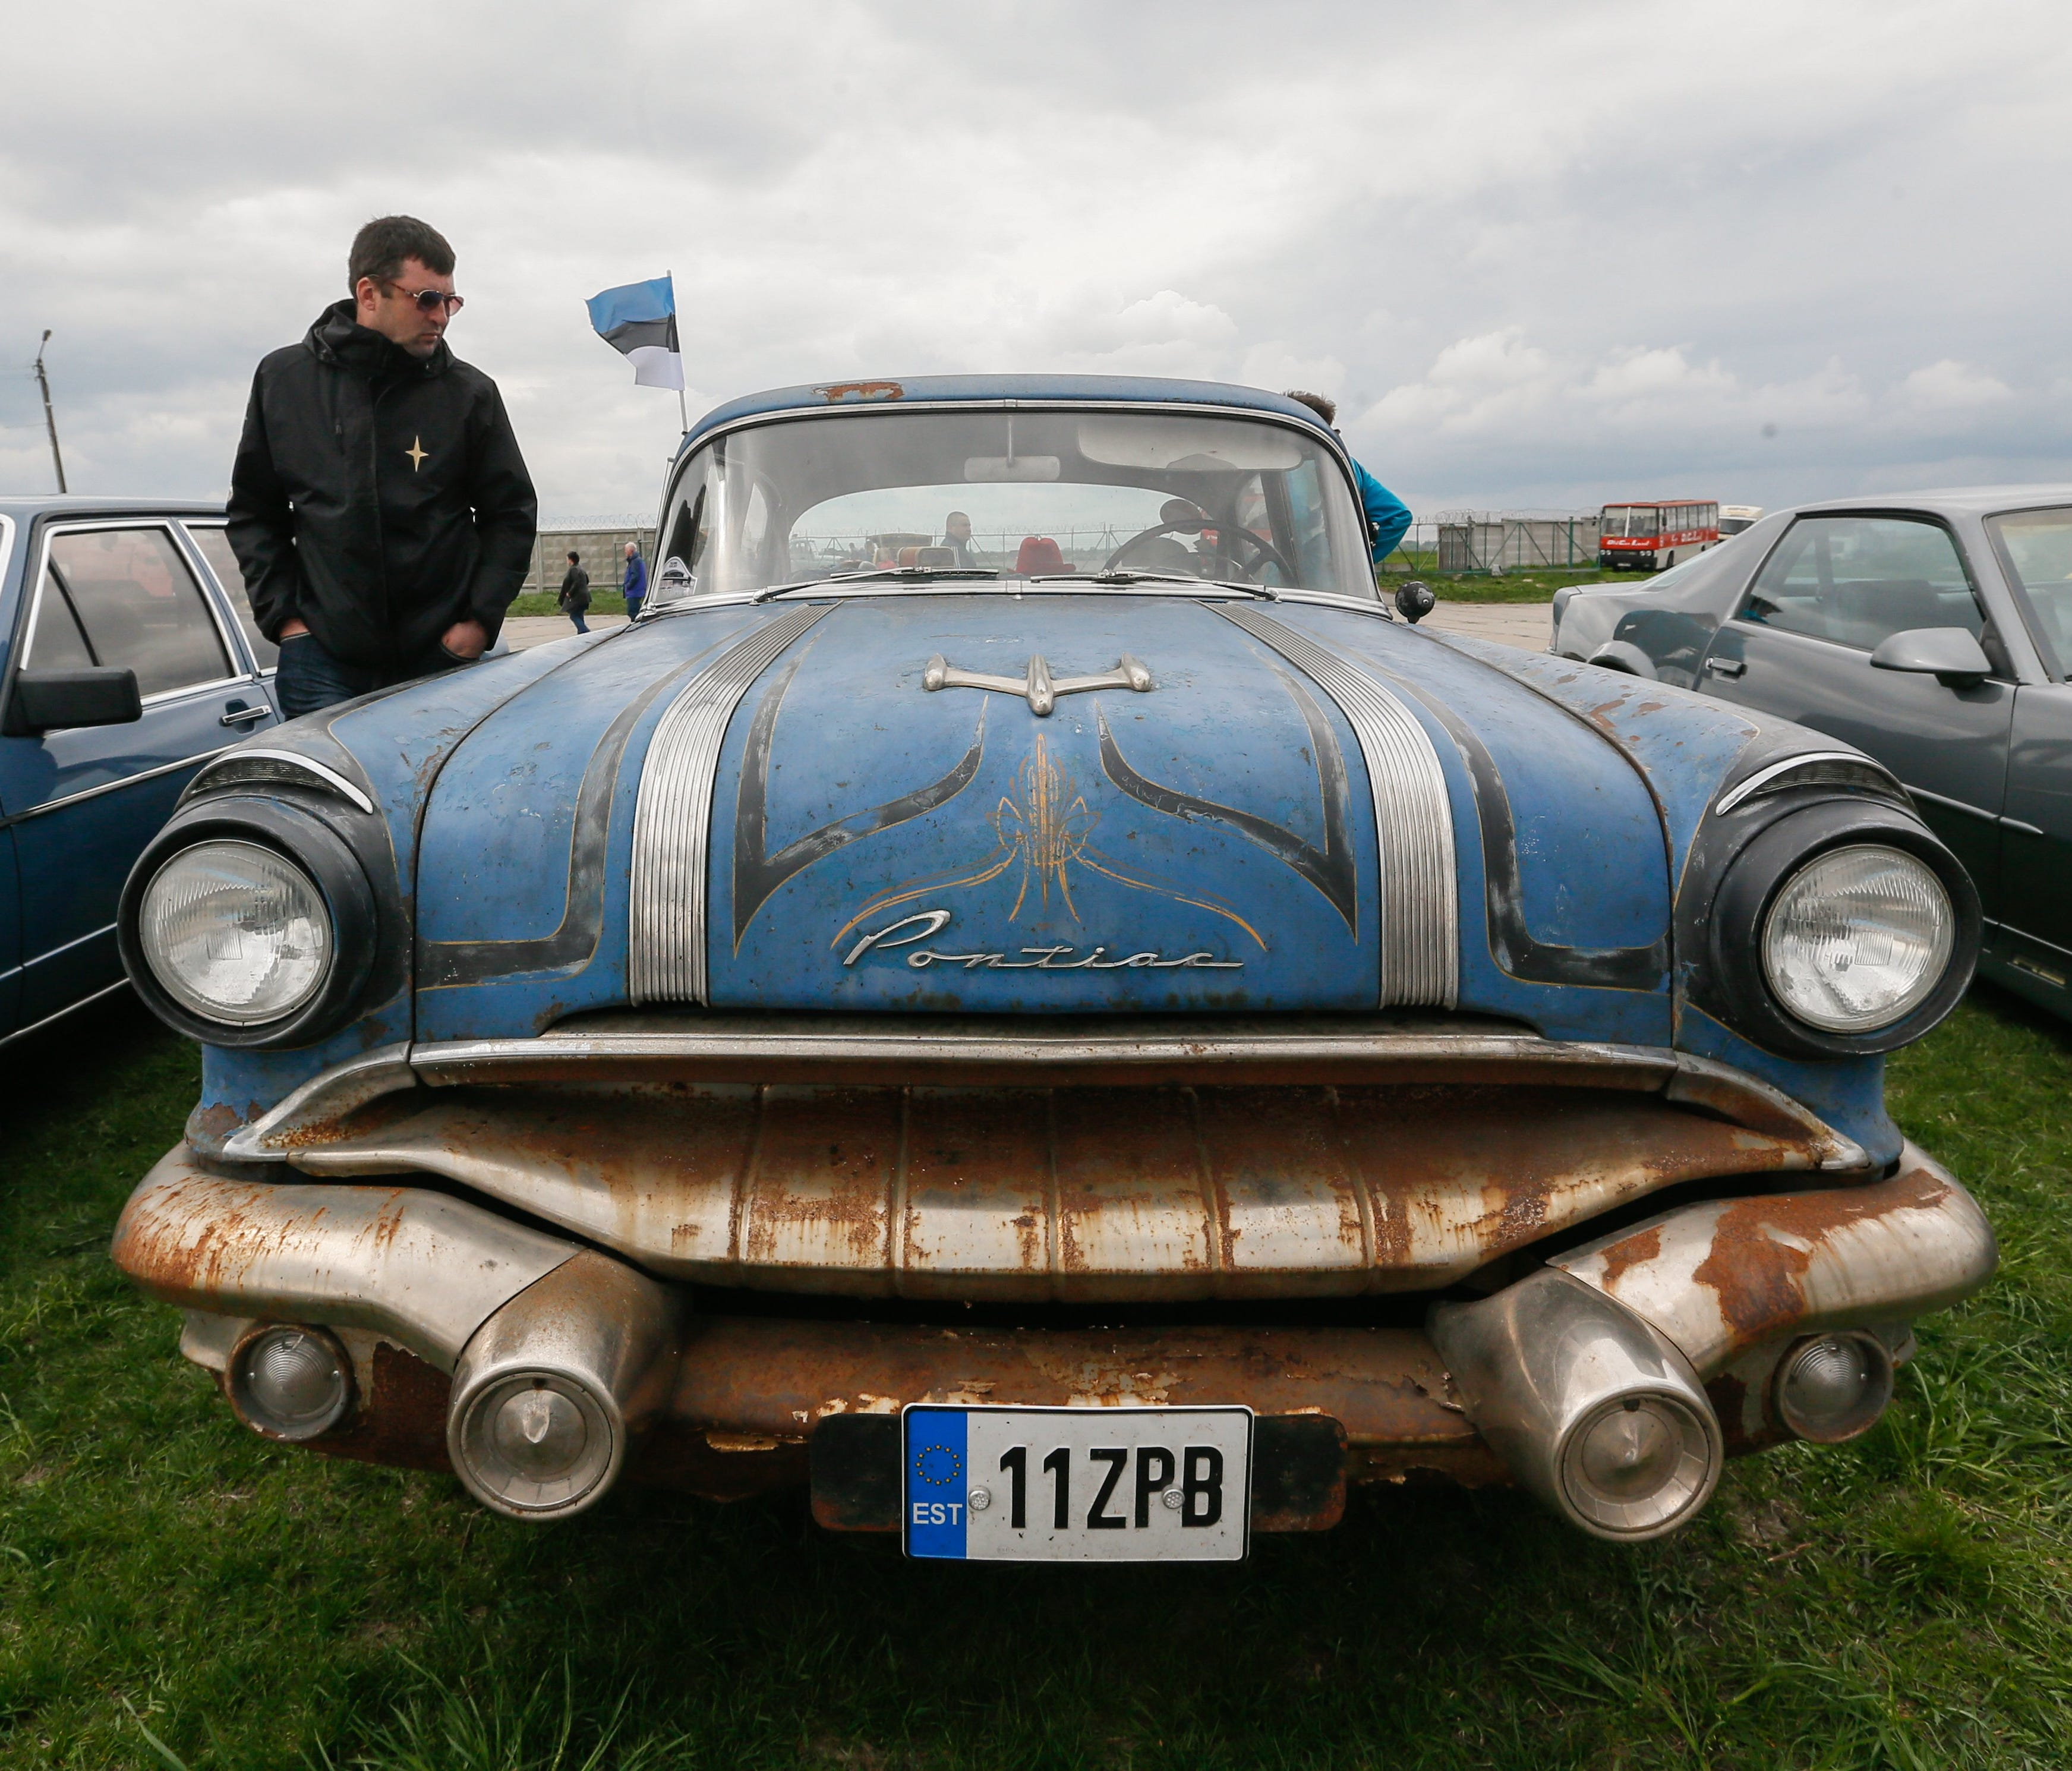 A visitor looks at a Pontiac Chieftain made in 1956 during the 'OldCarLand' motor show in Kiev last month. About 1,000 old and exclusive cars and motorcycles were presented at the Ukrainian Aviation museum.